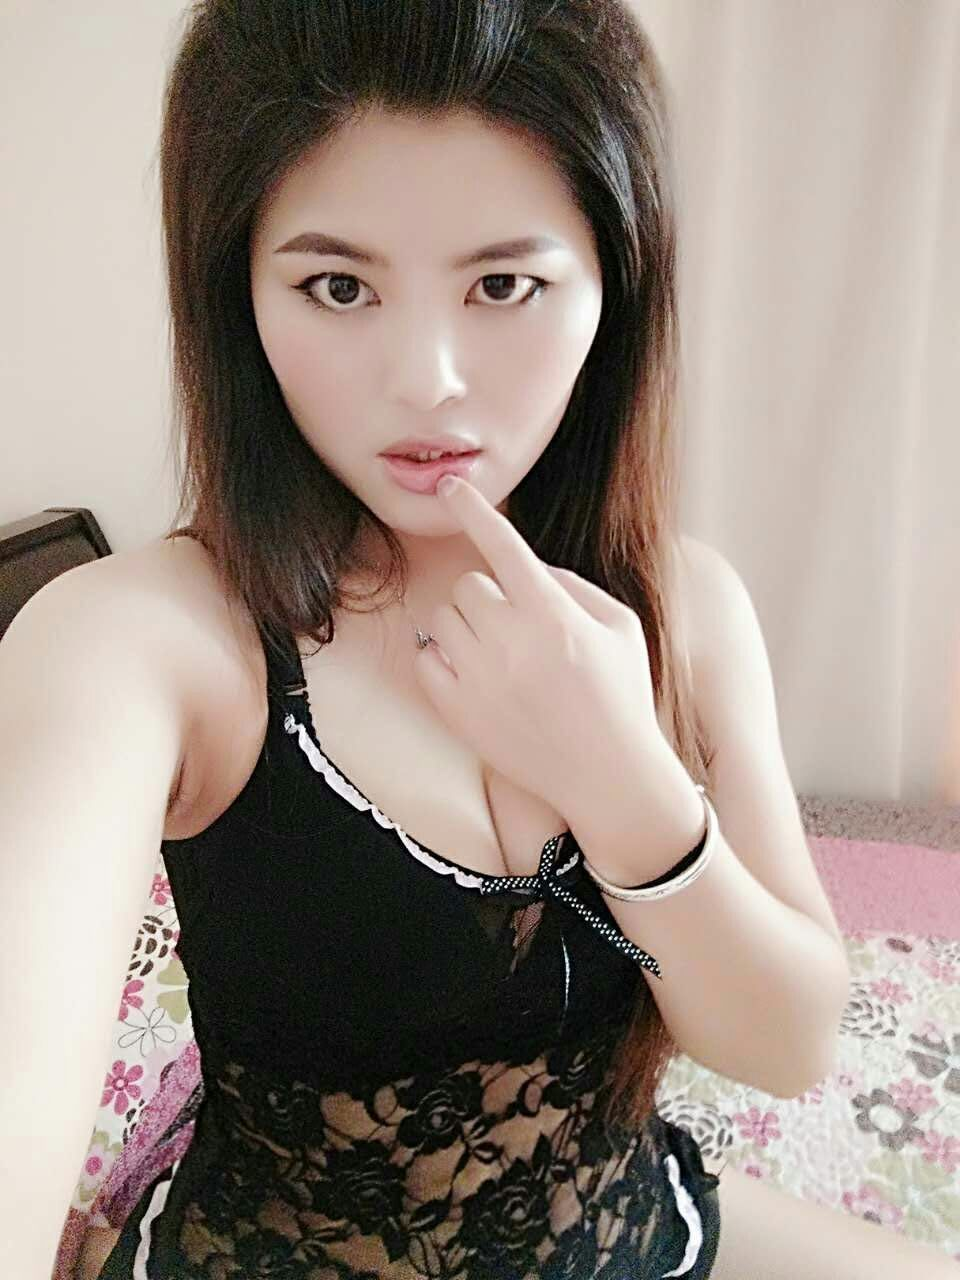 thai sex escort nuru massage italy